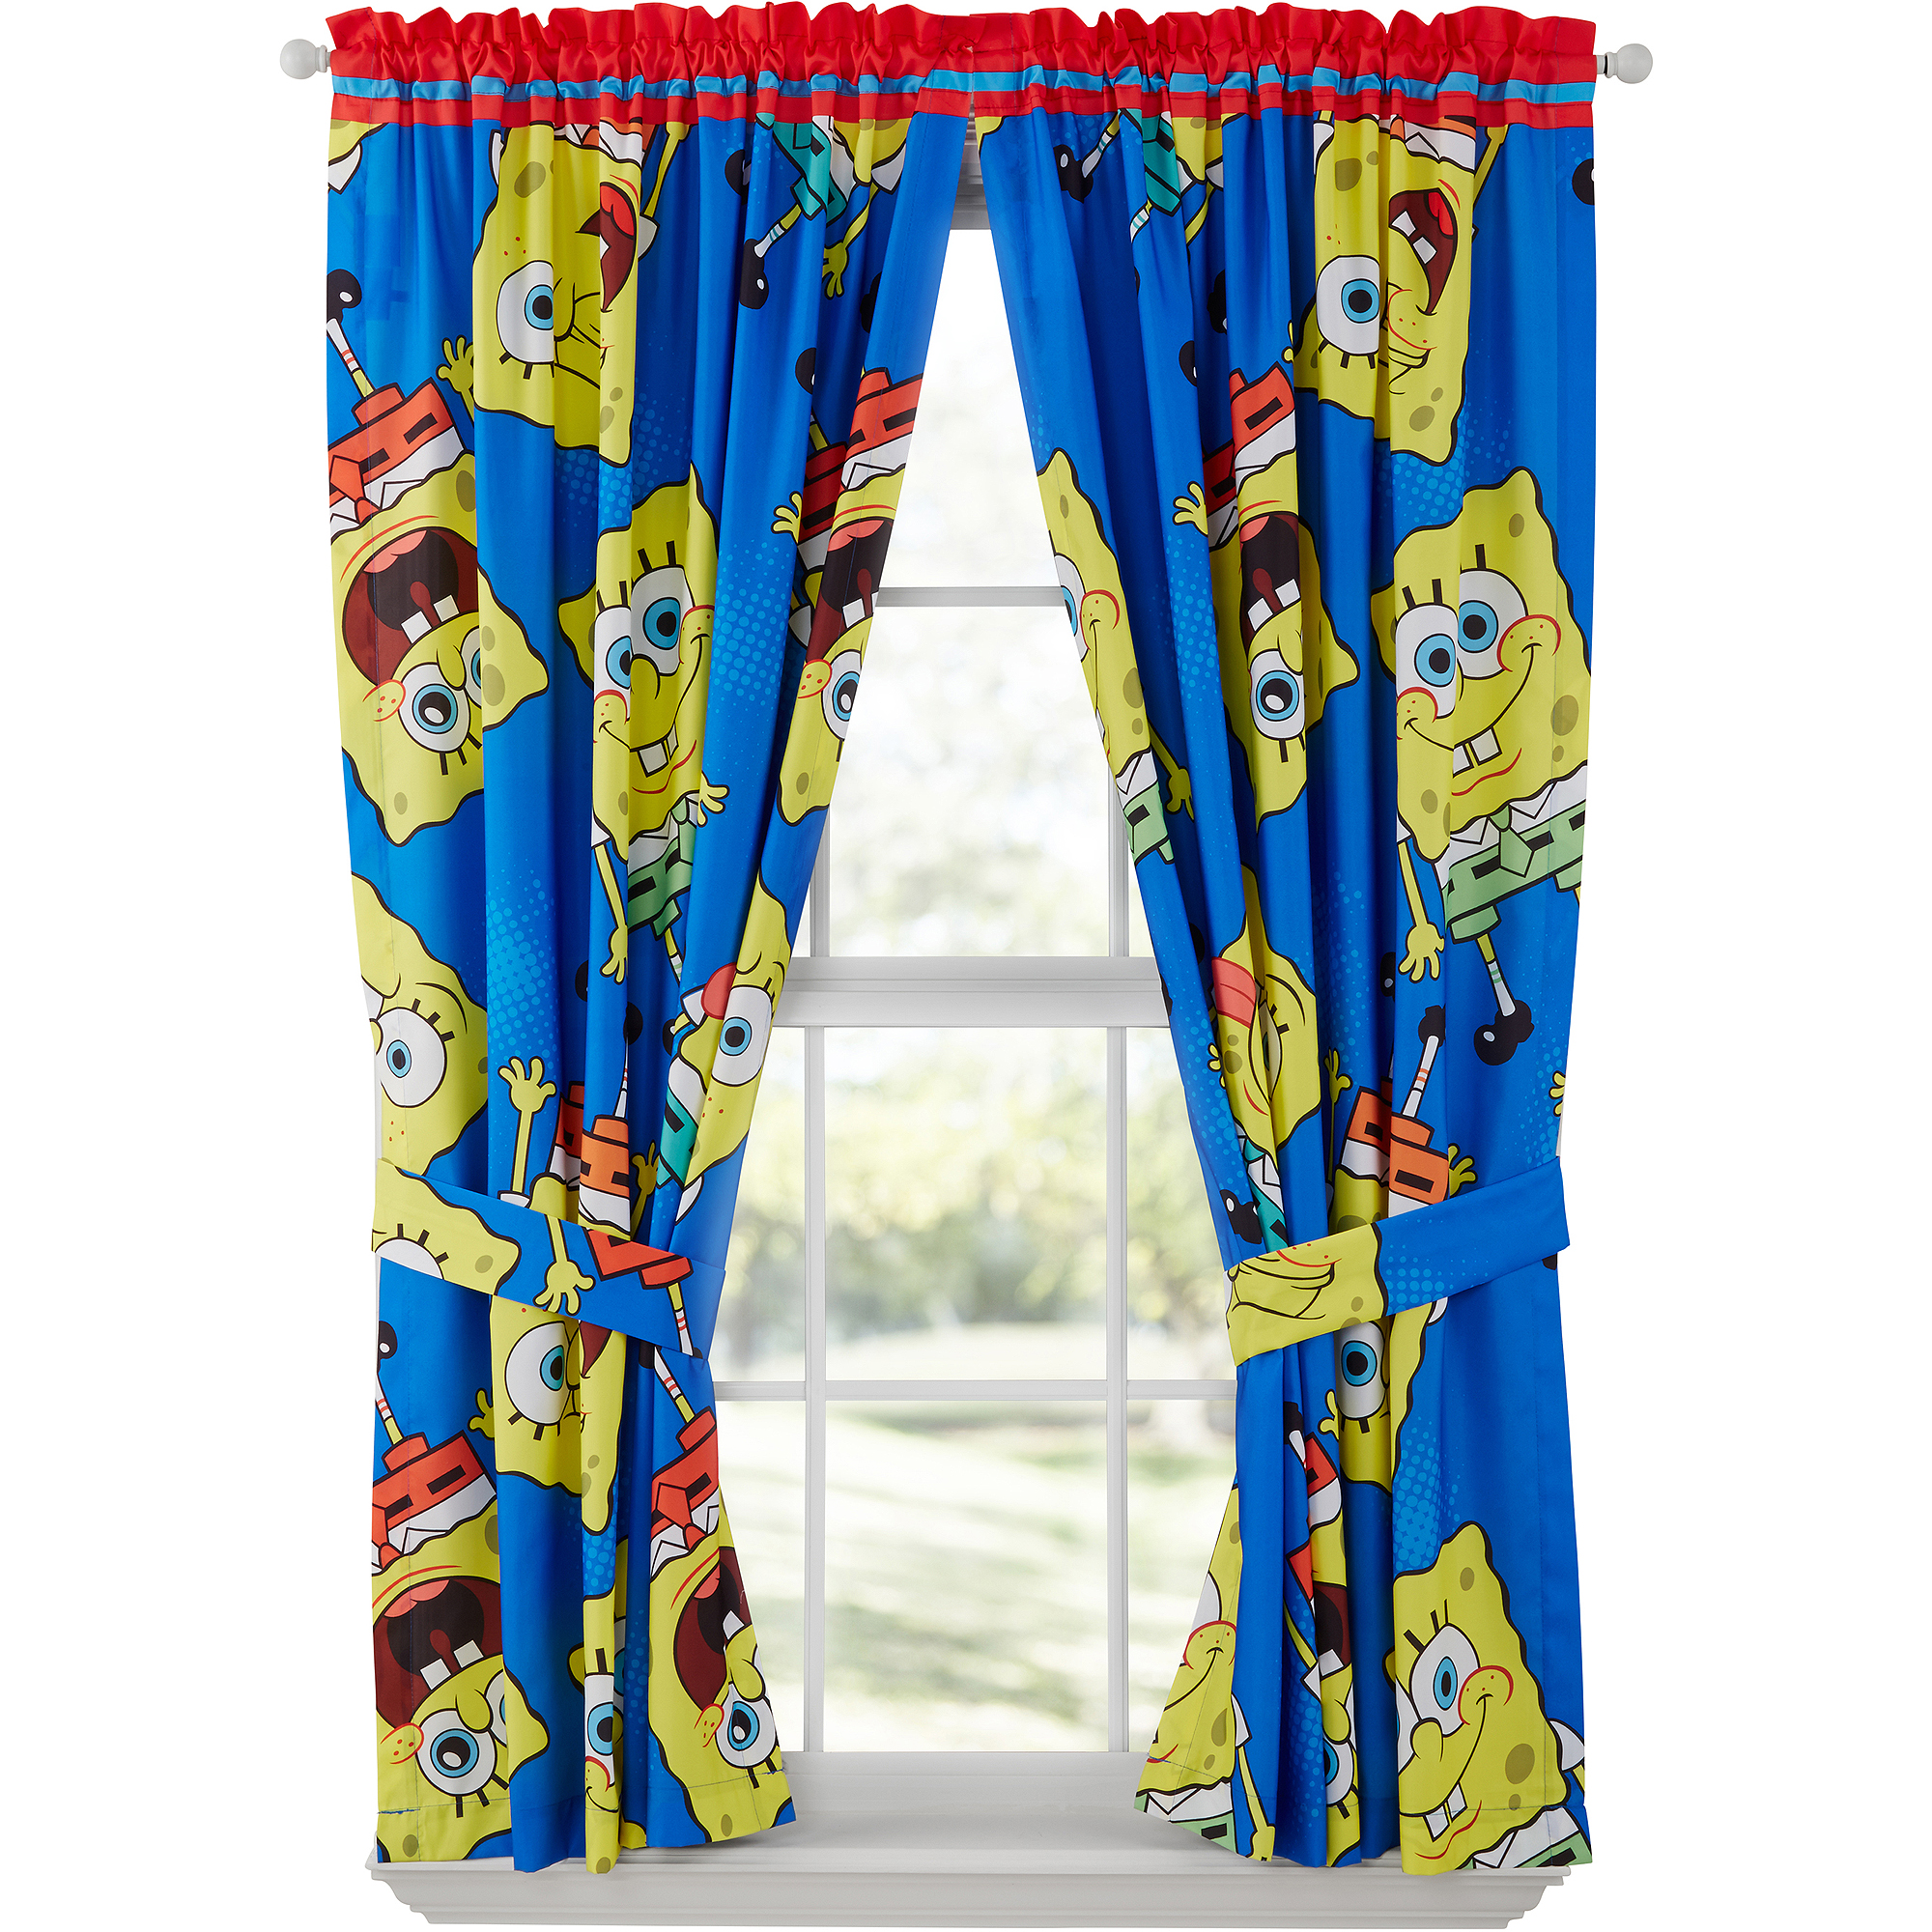 SpongeBob SquarePants Drapes, Set of 2